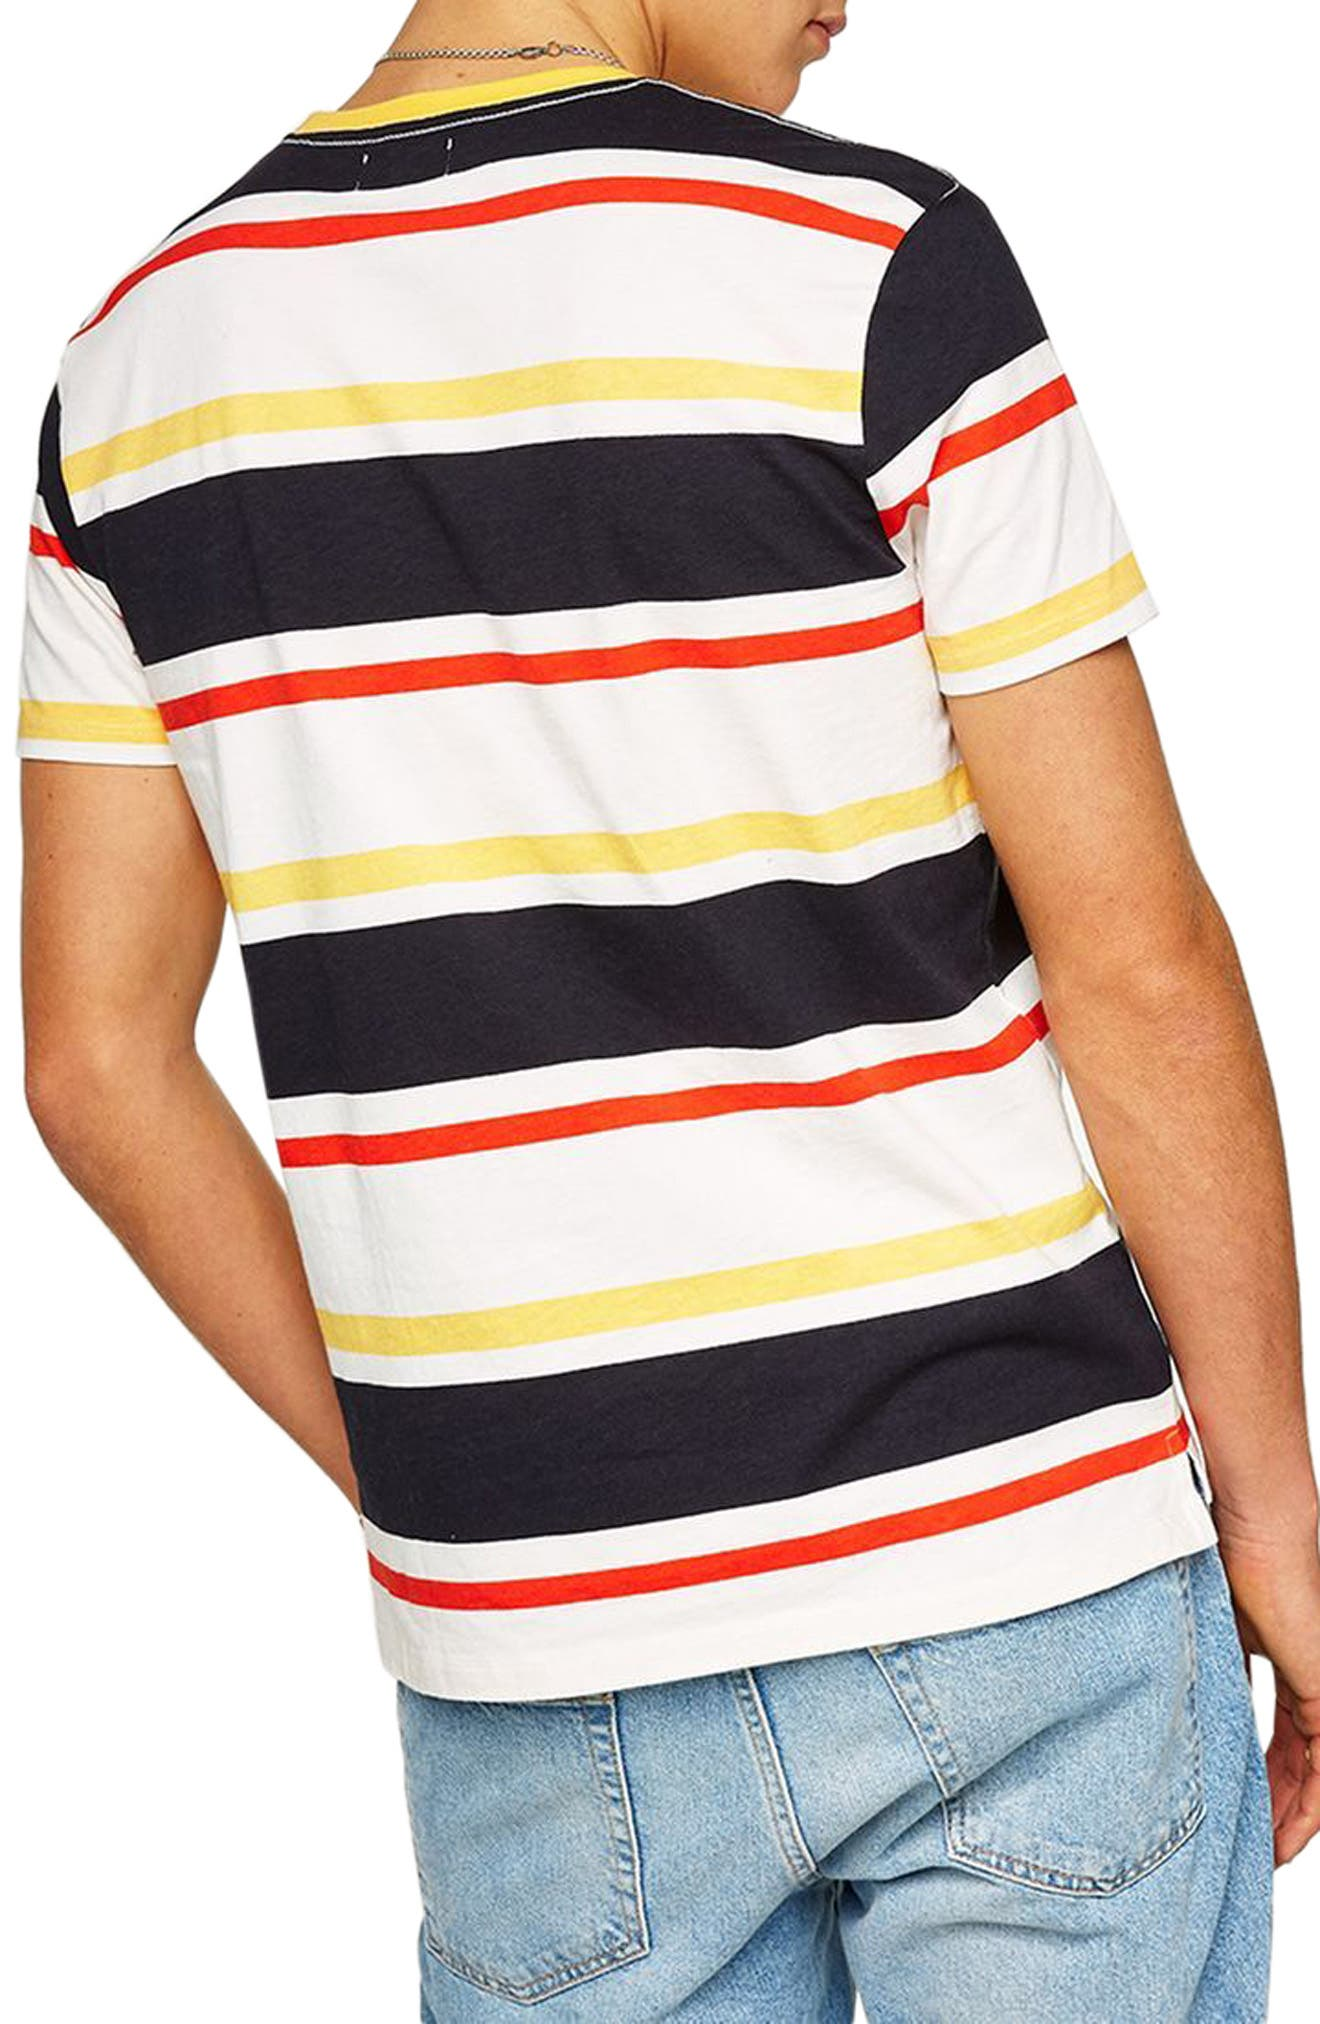 Slim Fit Stripe T-Shirt,                             Alternate thumbnail 2, color,                             700